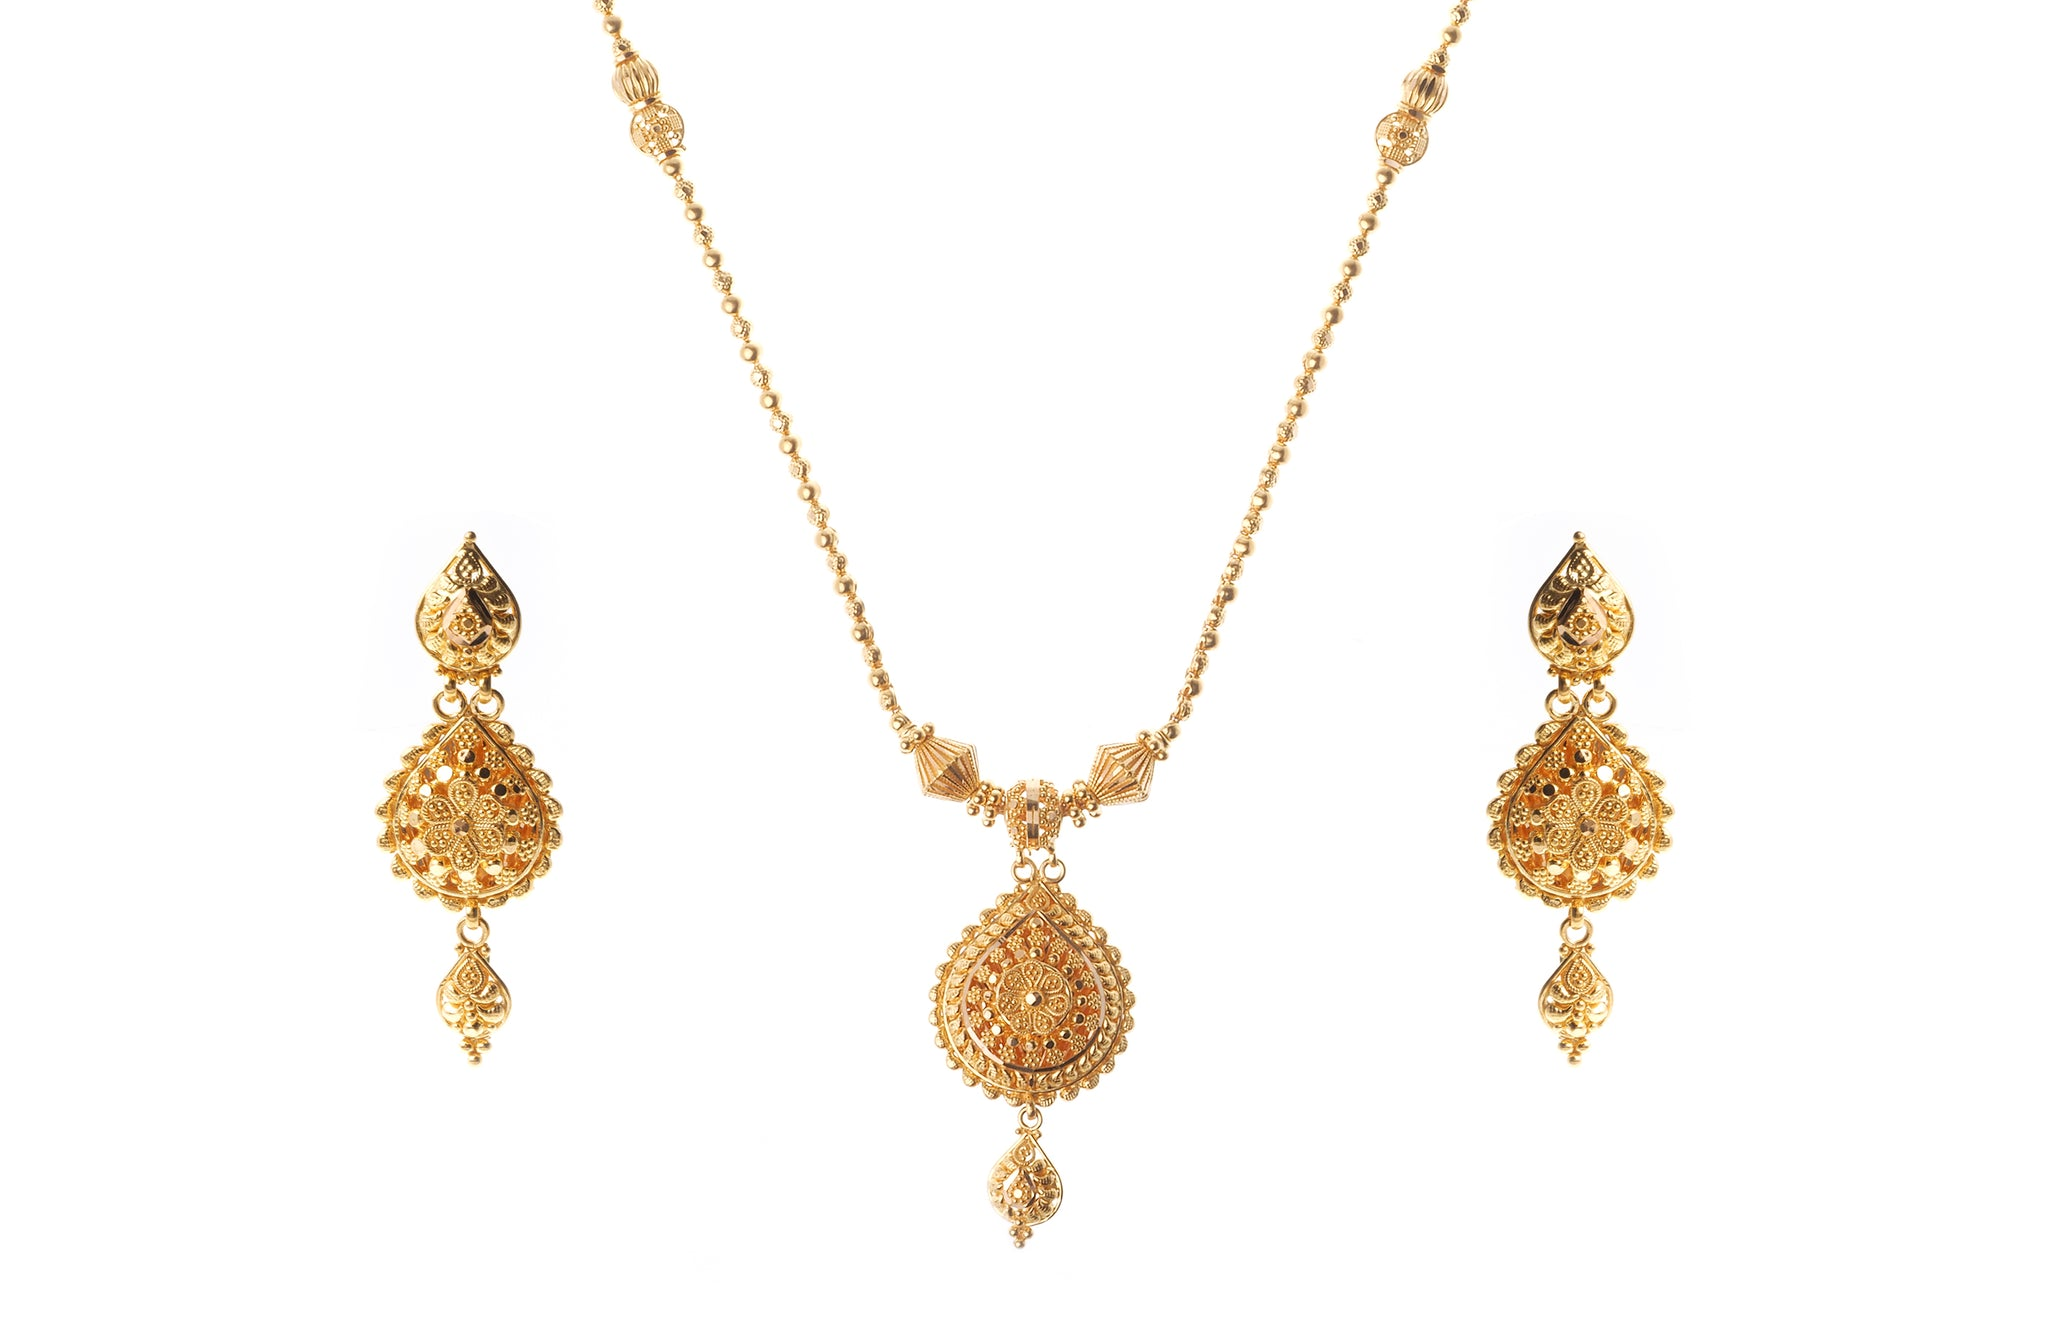 22ct Gold Necklace and Earrings Set with Diamond Cut Design (34g) N&E-7200